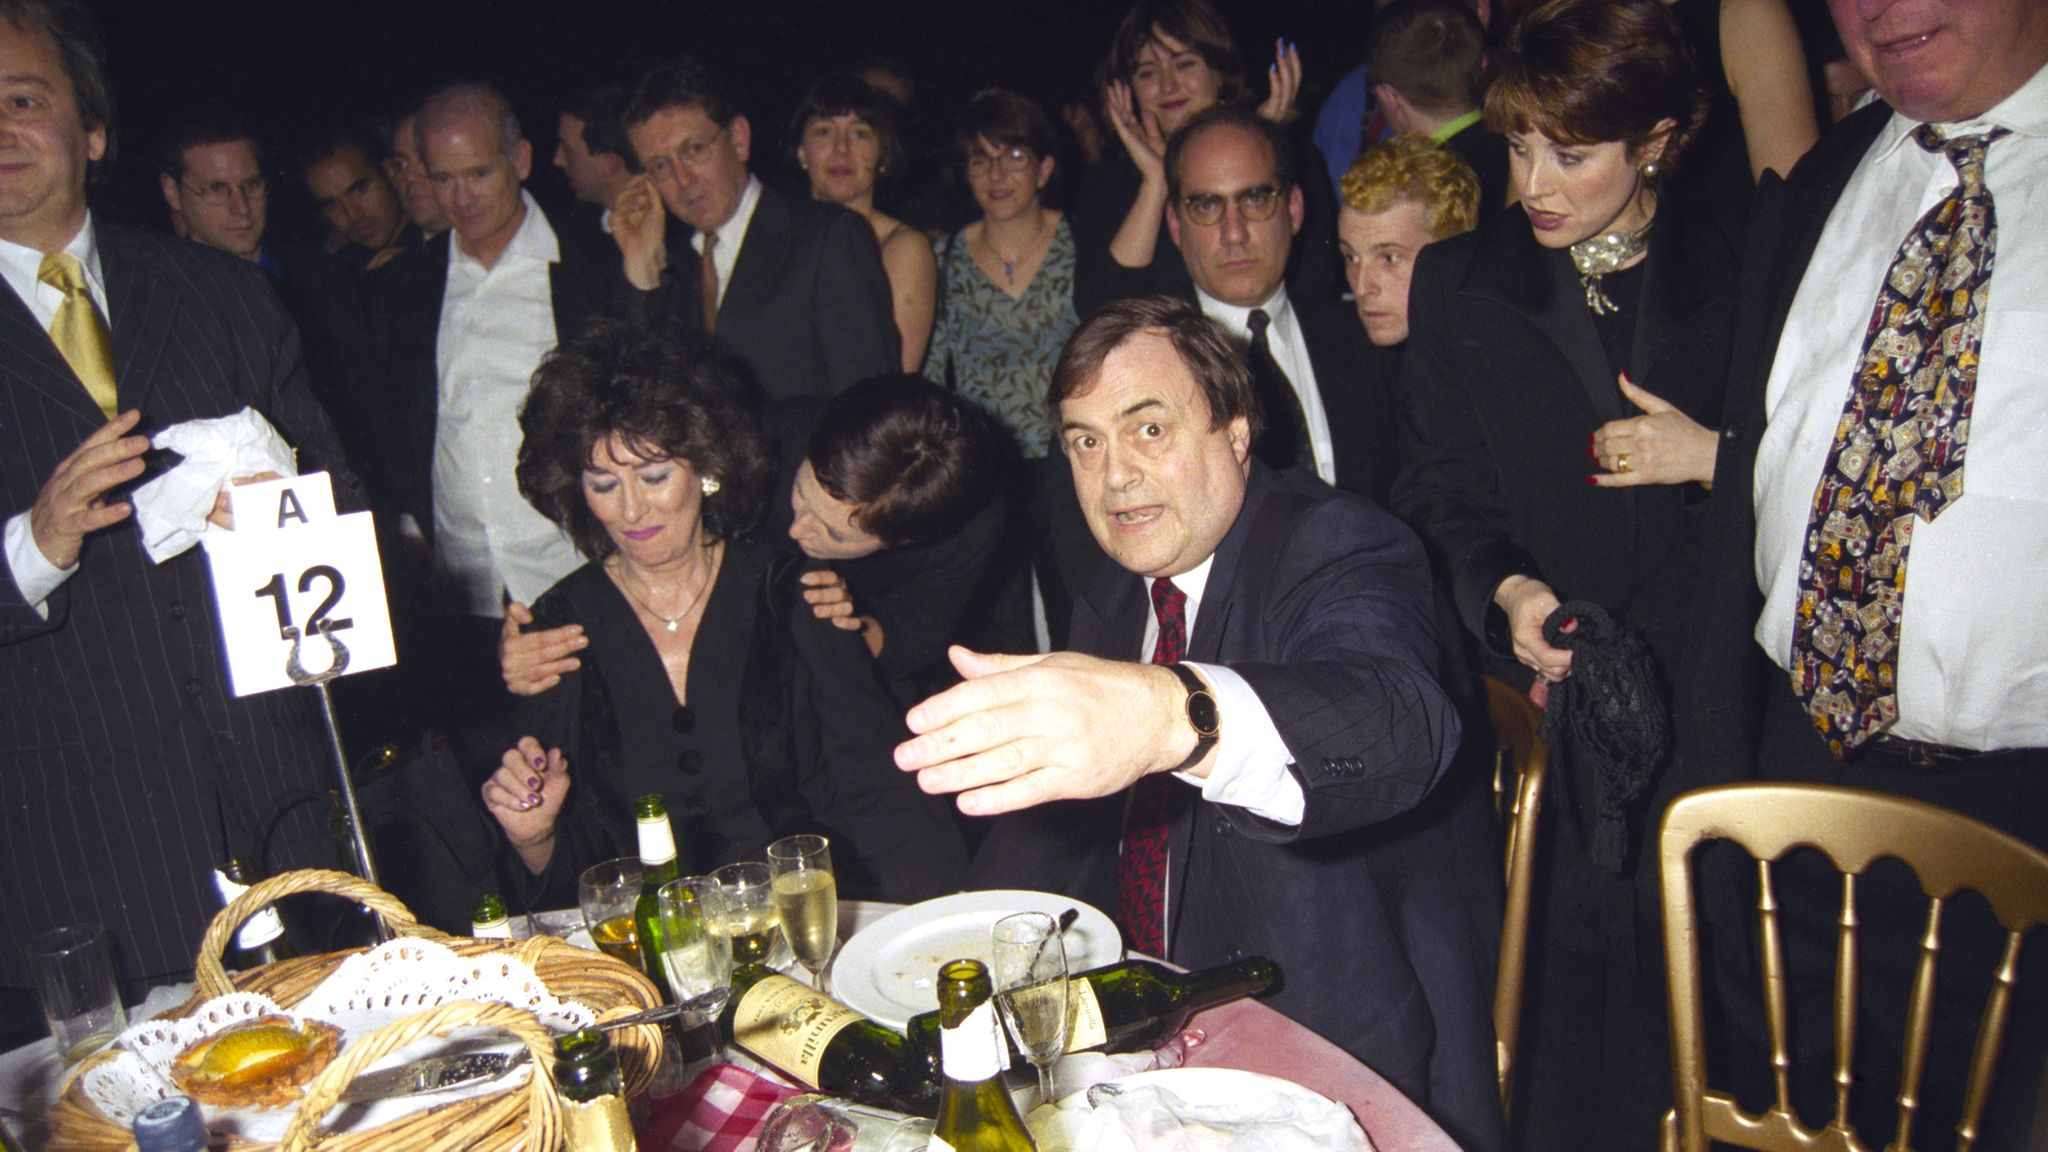 John Prescott and his wife Pauline Prescott, having just been doused with cold water by Danbert Nobacon of Chumbawumba in 1998